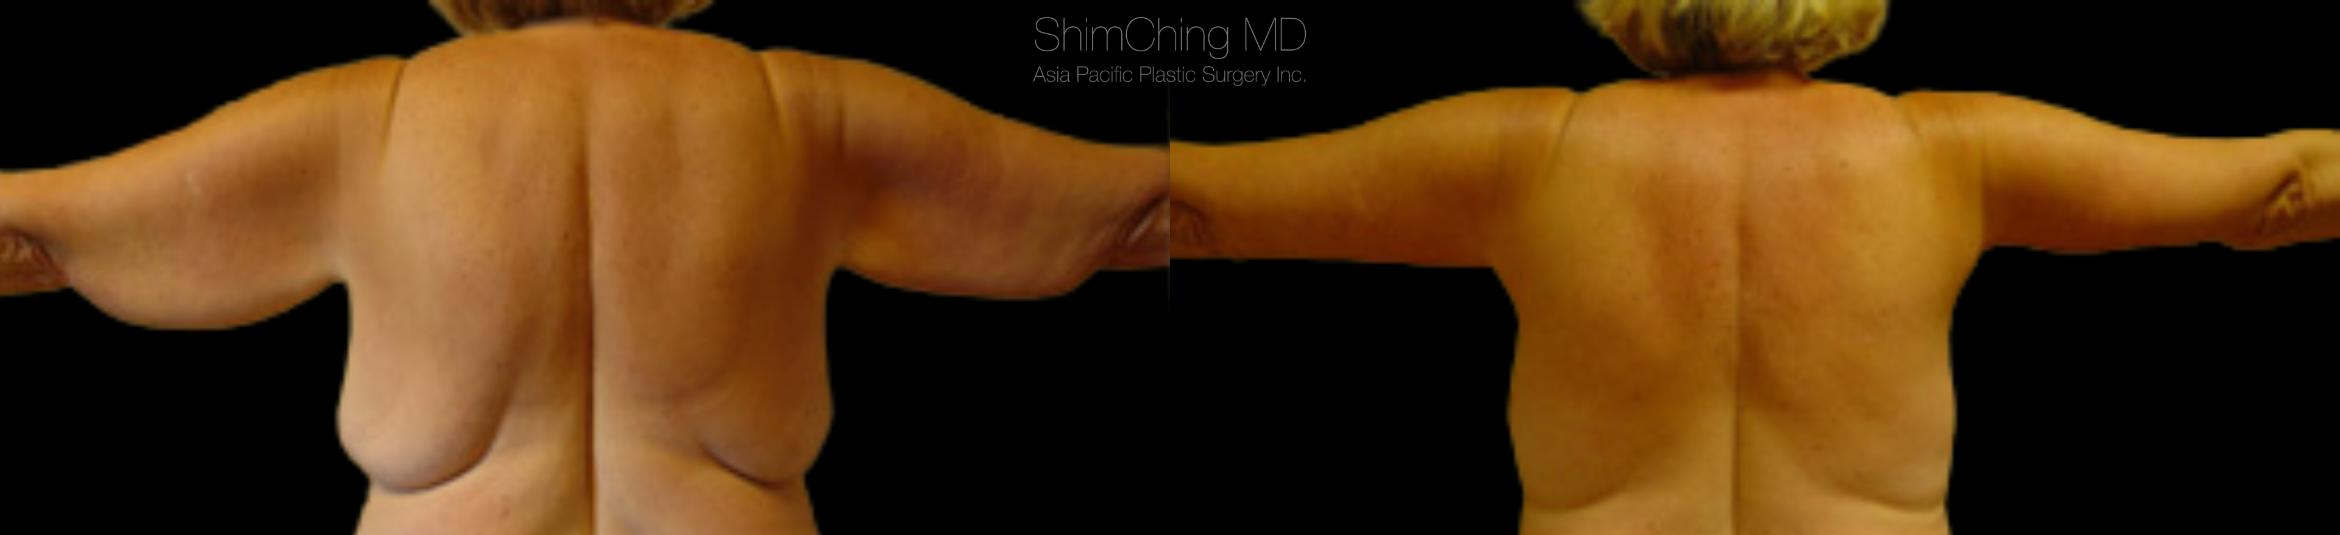 Homepage Featured Cases Case 98 Before & After Back | Honolulu, HI | Shim Ching, MD: Asia Pacific Plastic Surgery